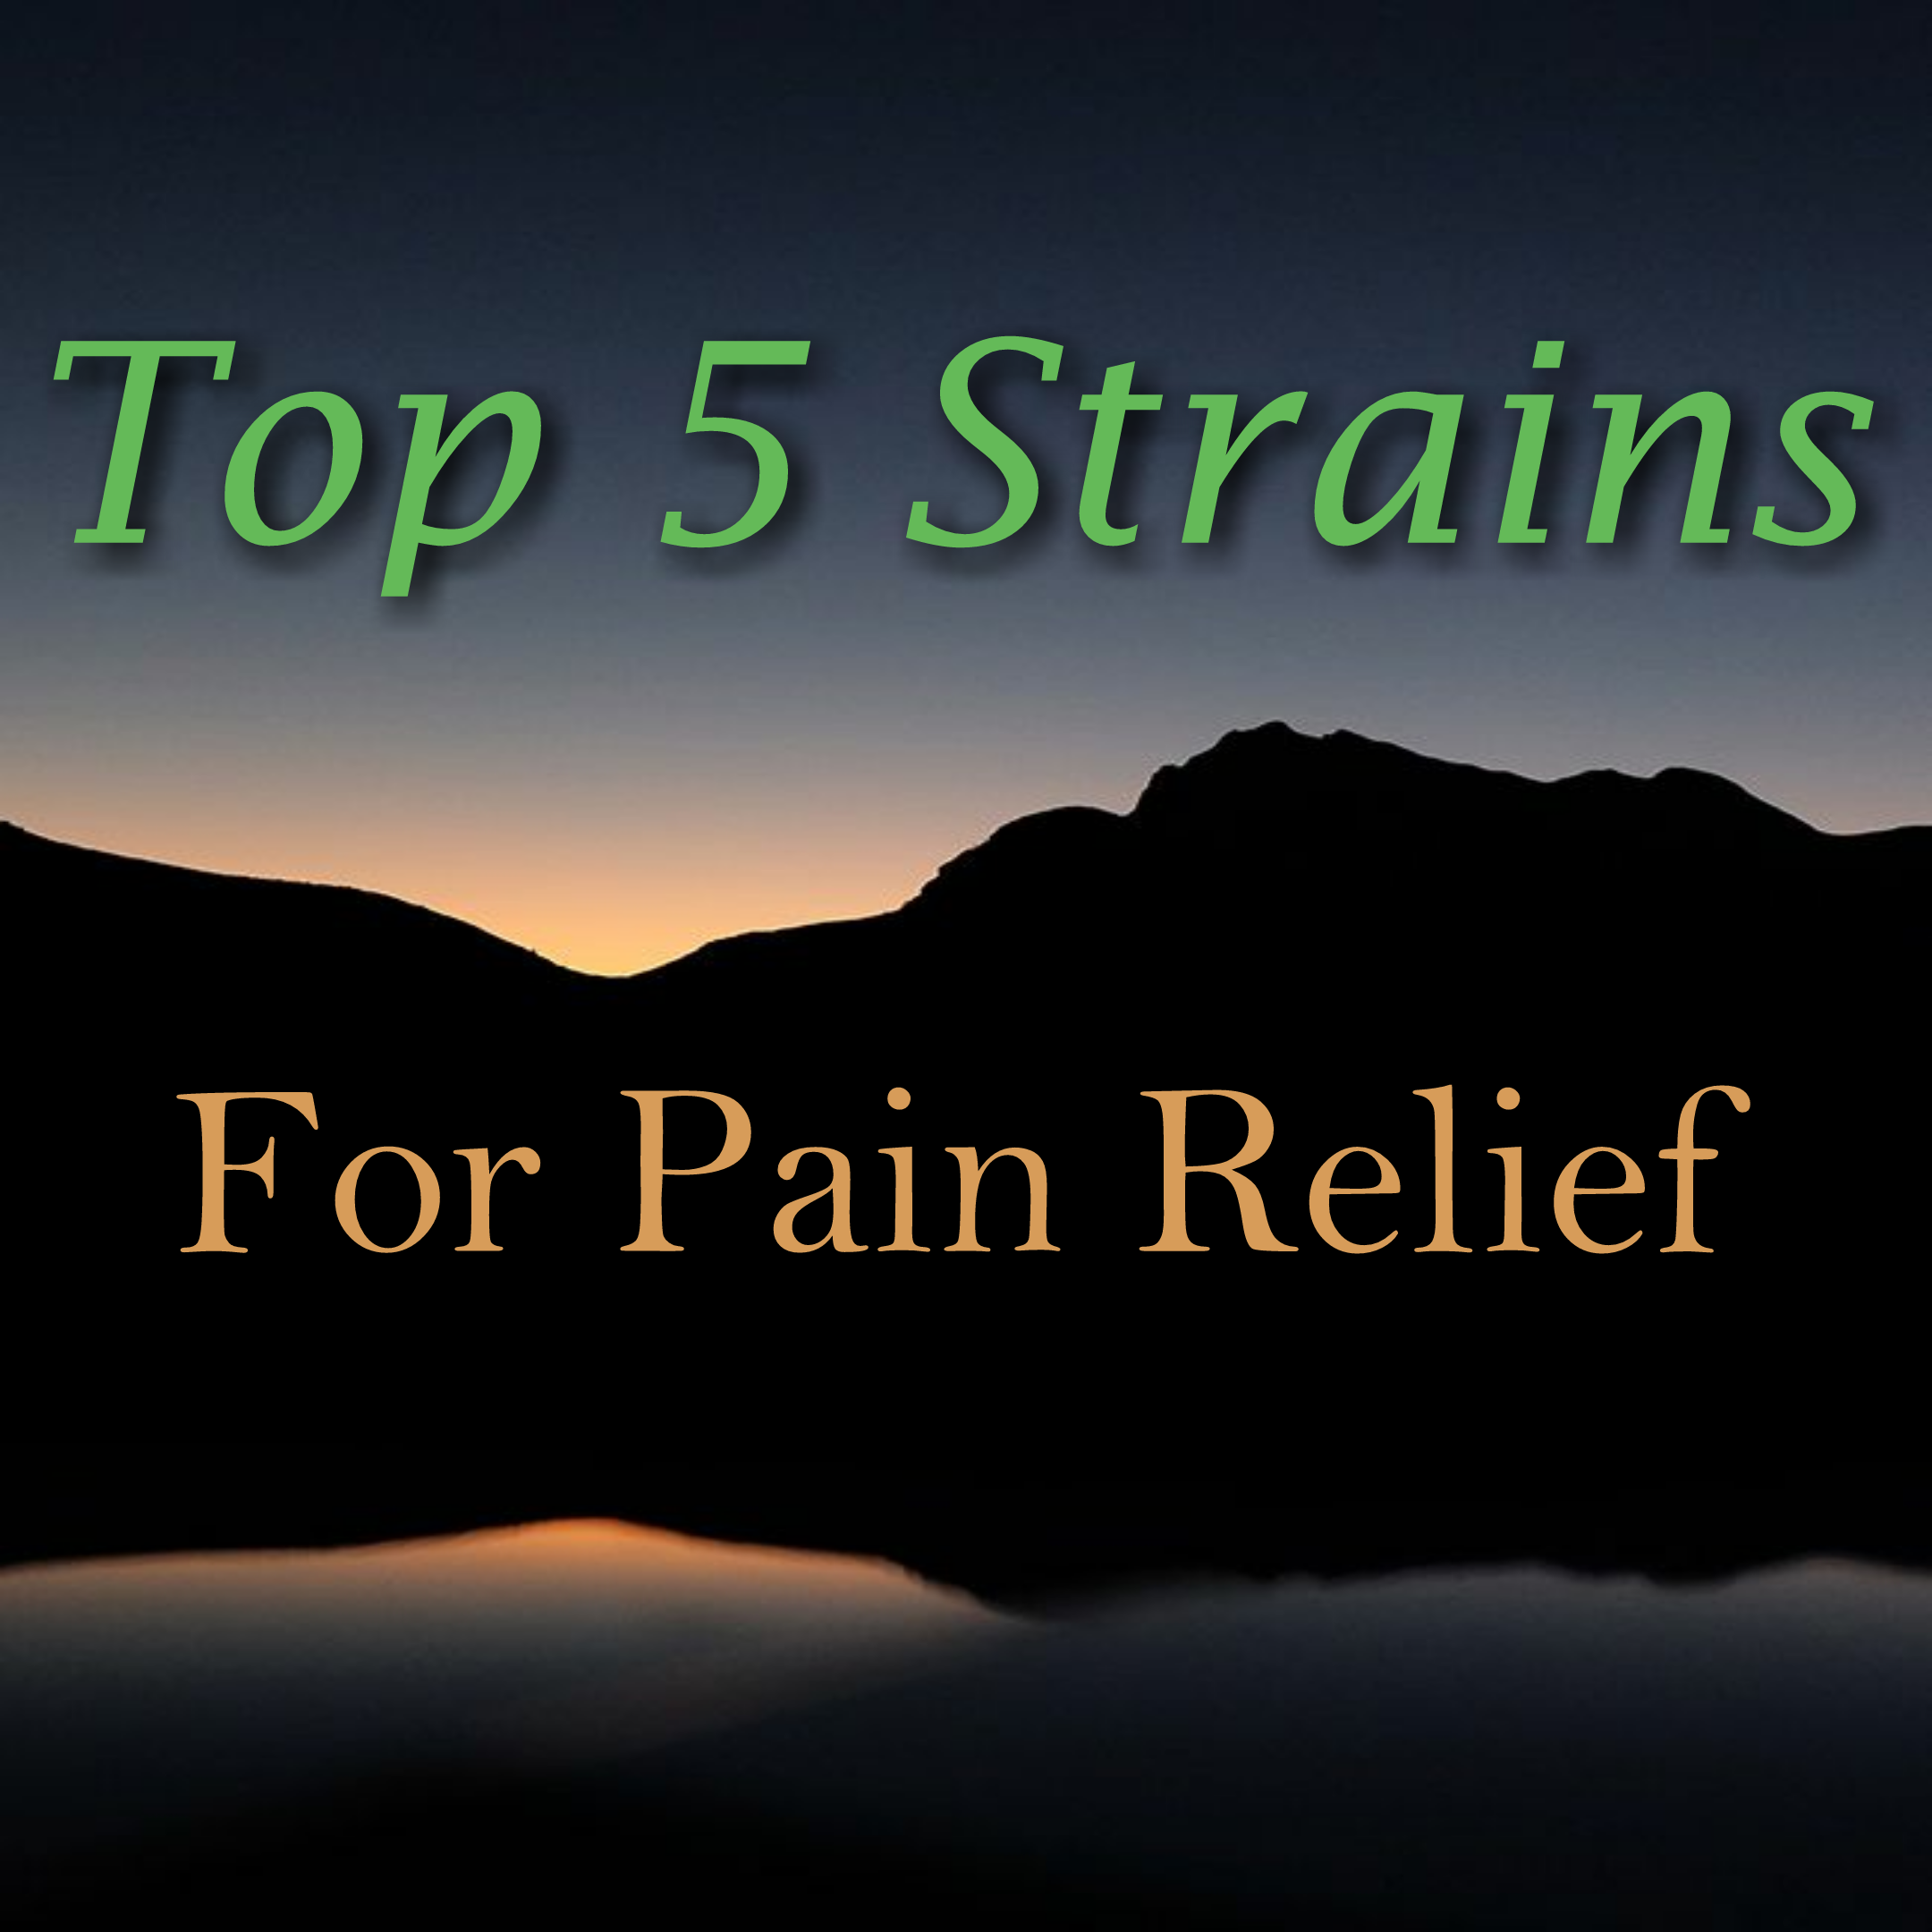 Top 5 Strains For Pain Relief